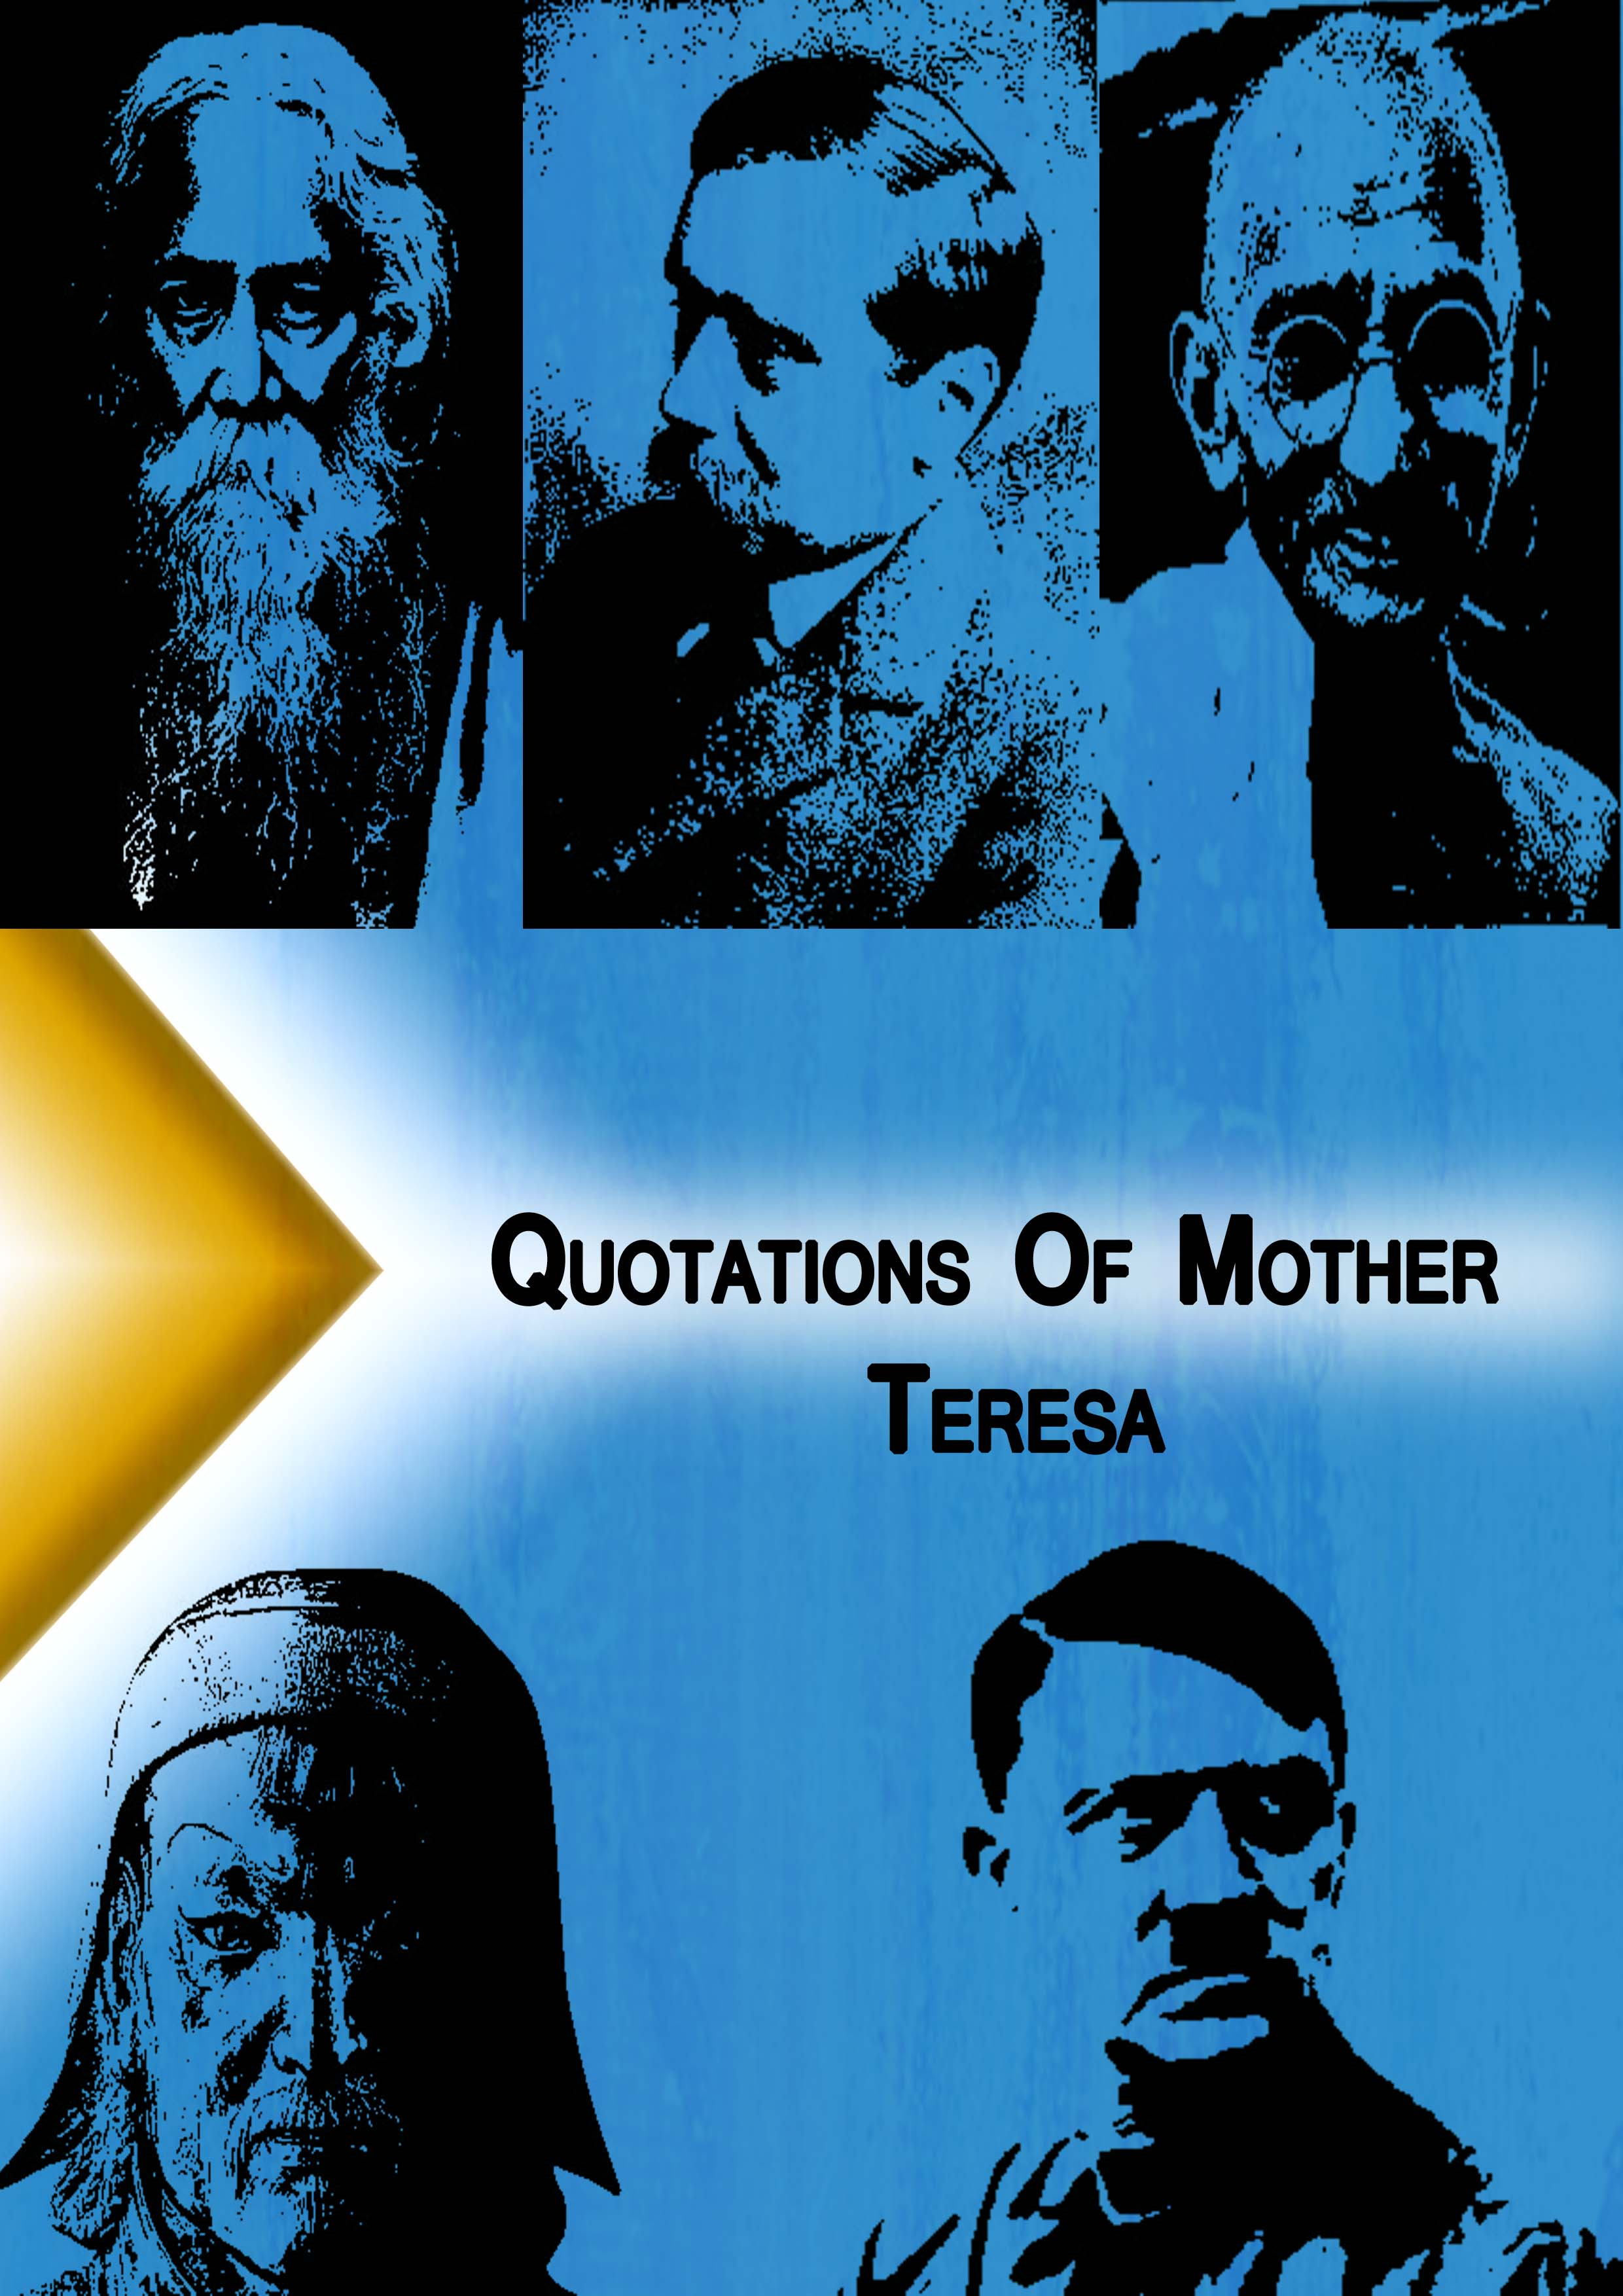 Qoutations of Mother Teresa By: Quotation Classics